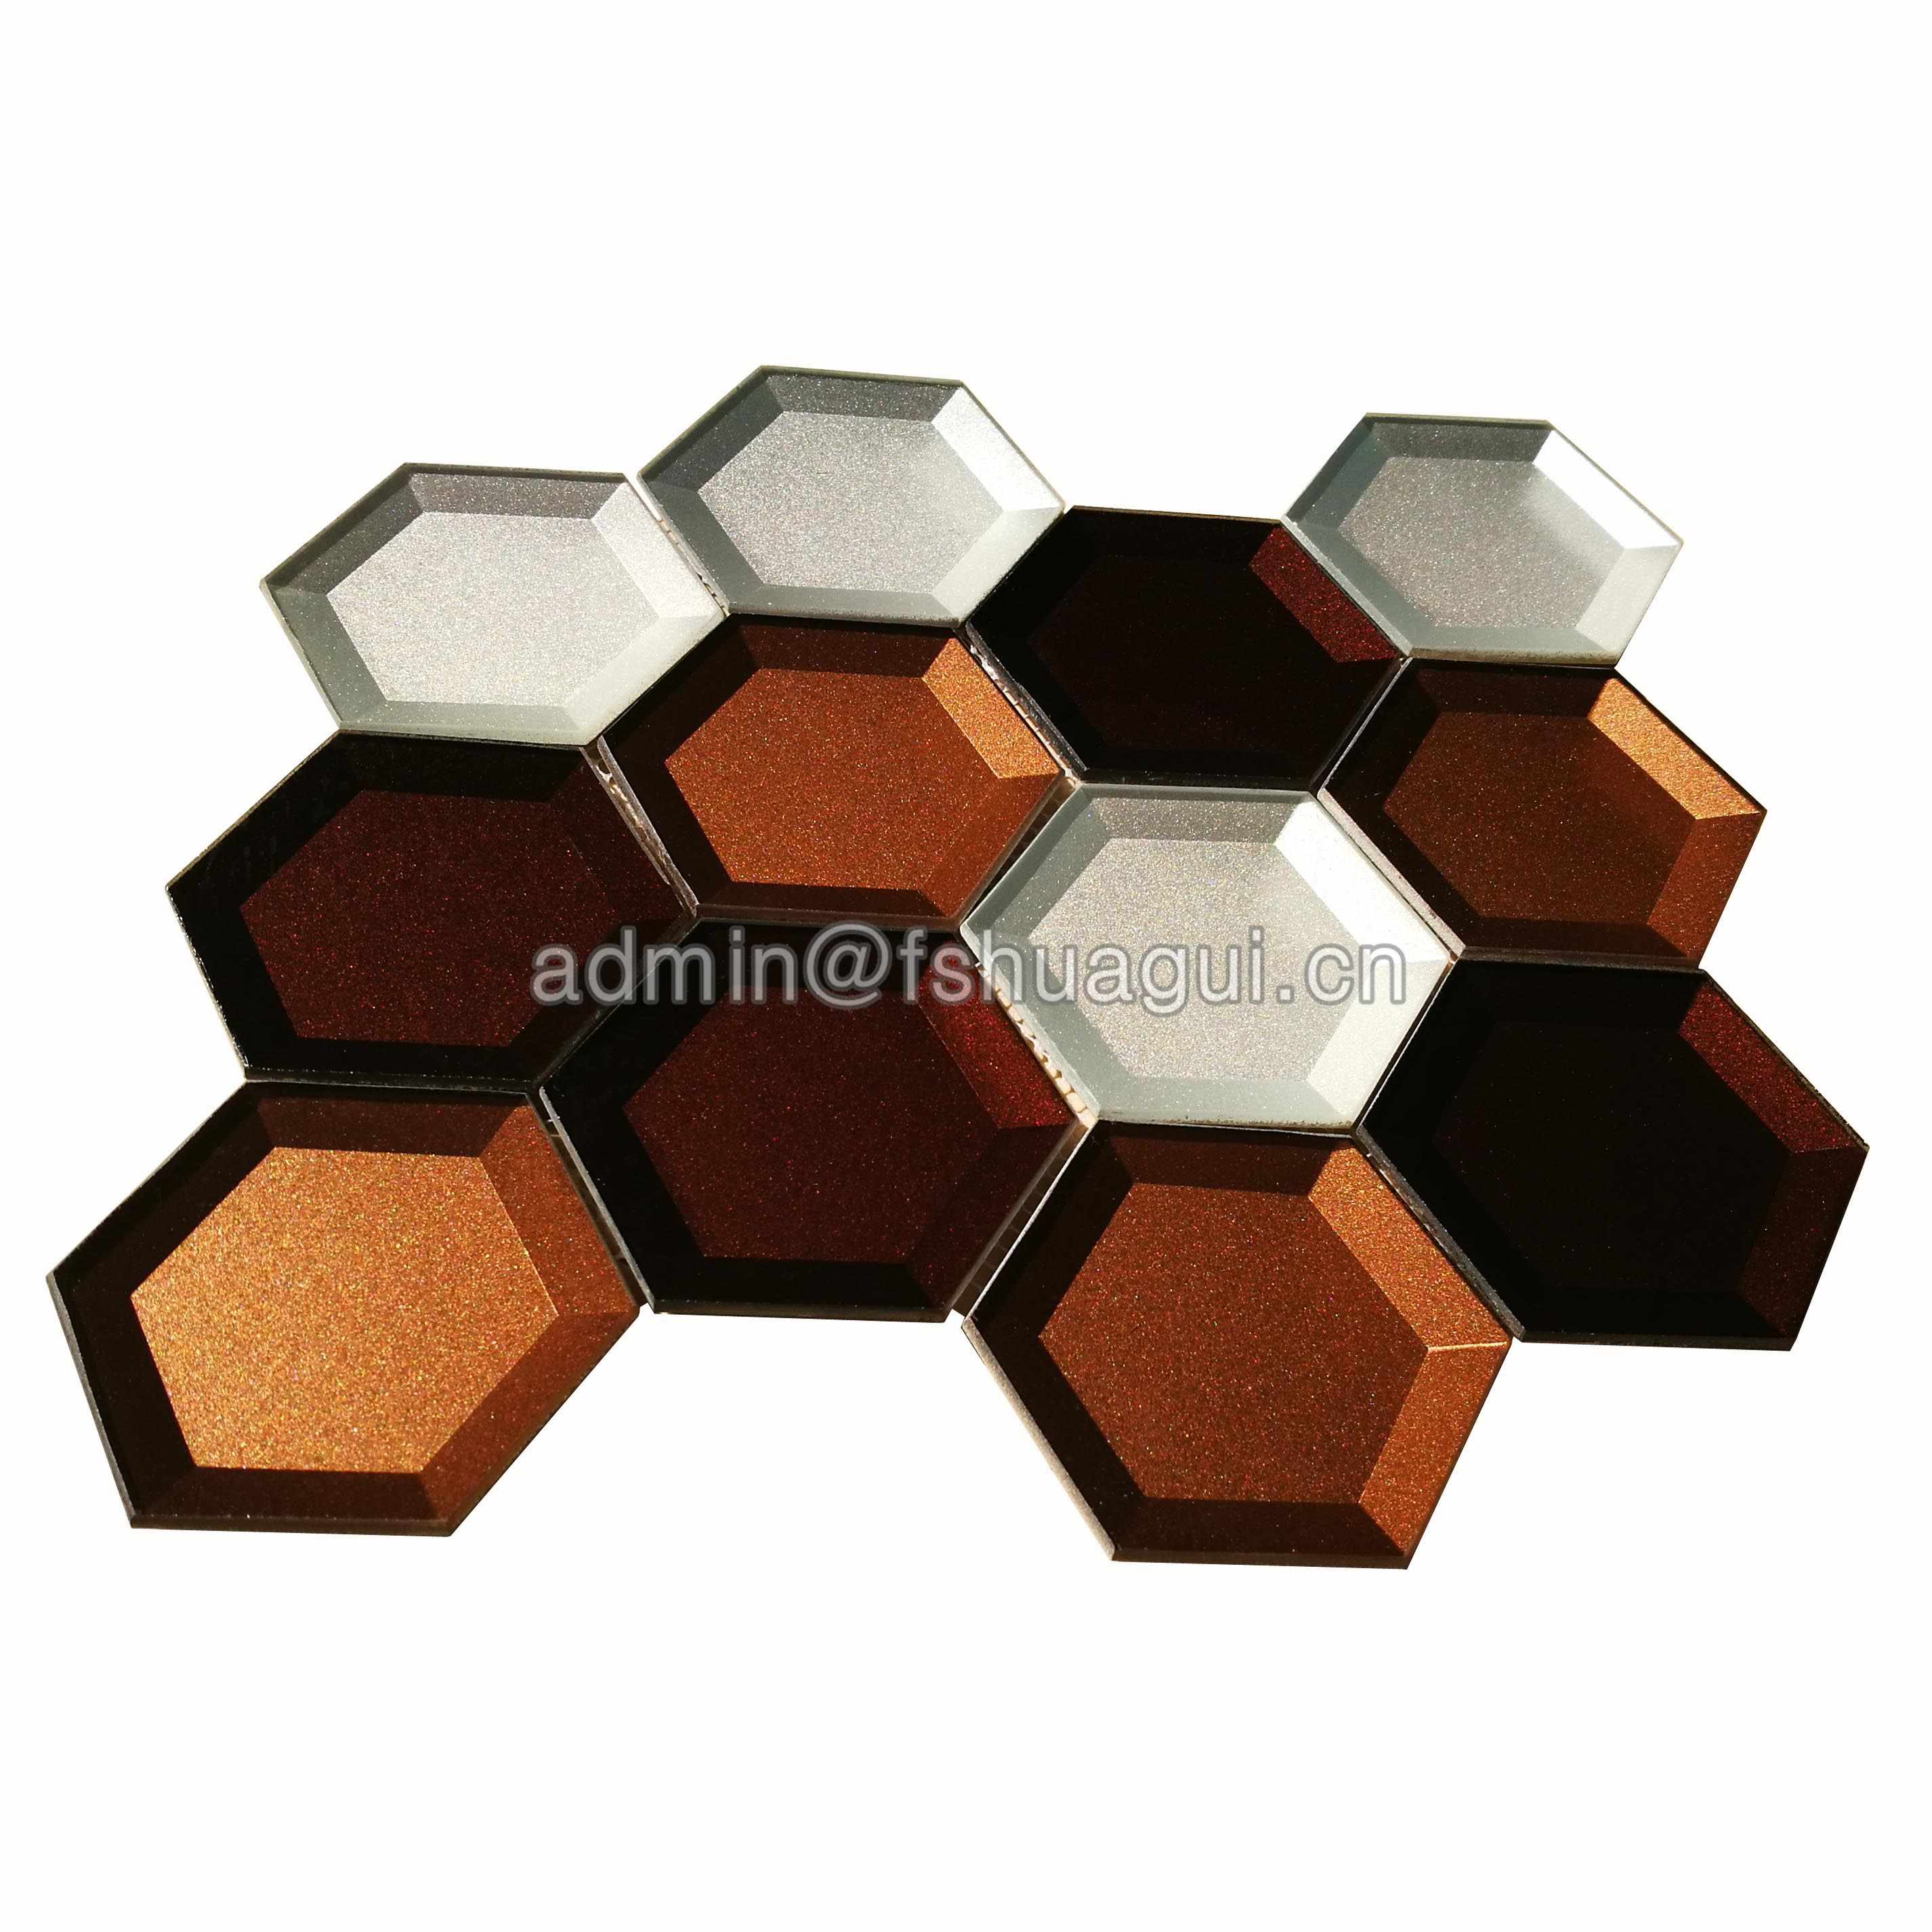 Huagui Mixed color glossy glass hexagon mosaic tile HG-HB010 GLASS MOSAIC TILE image120